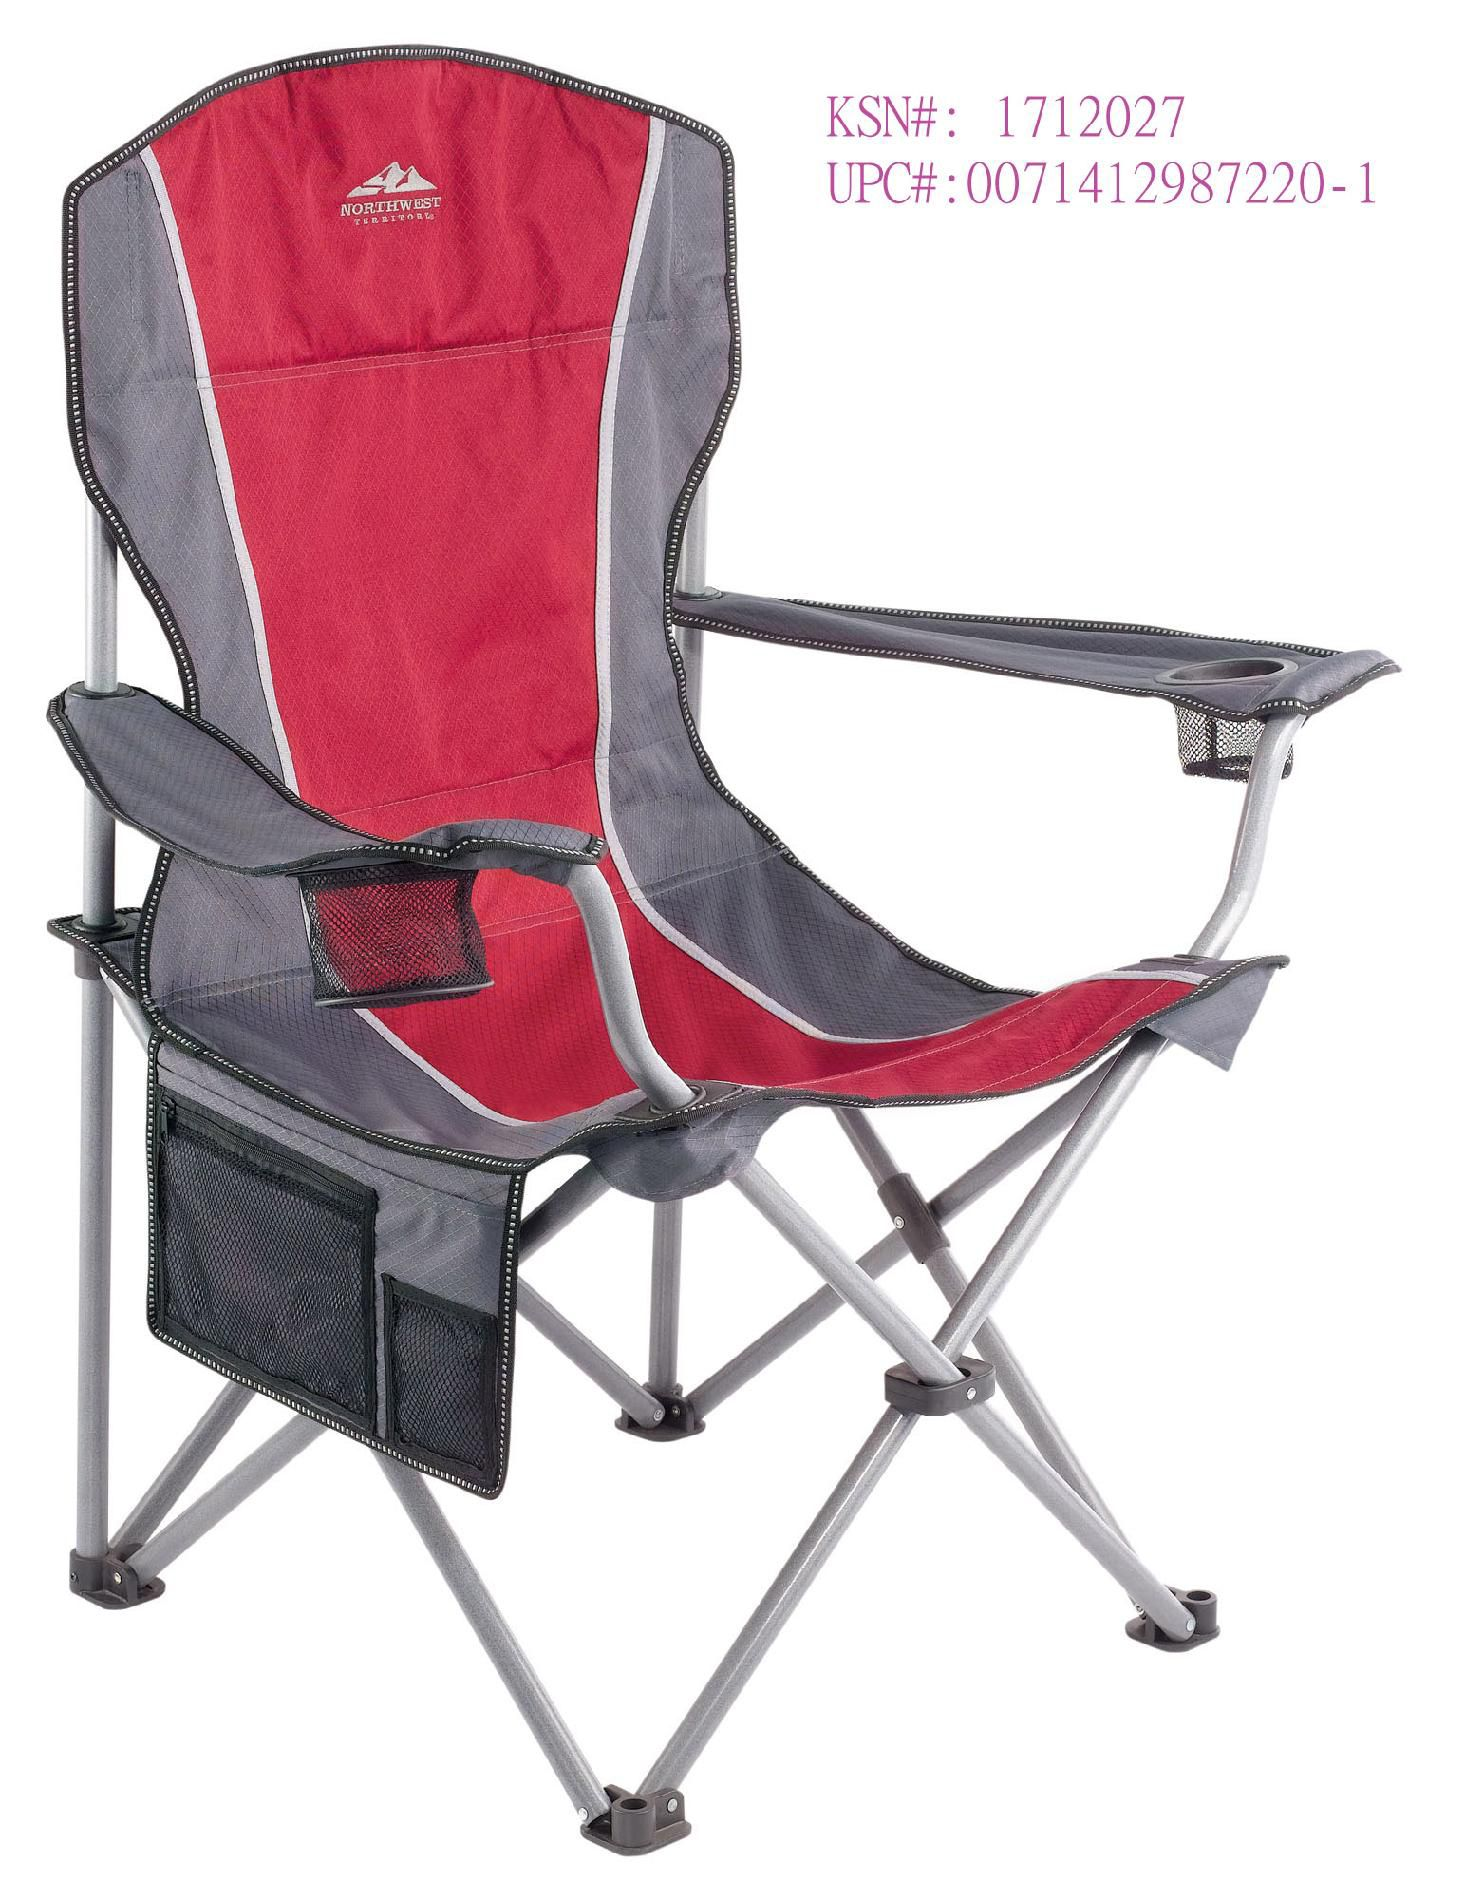 northwest territory chairs best desk for back big boy xl chair fitness and sports